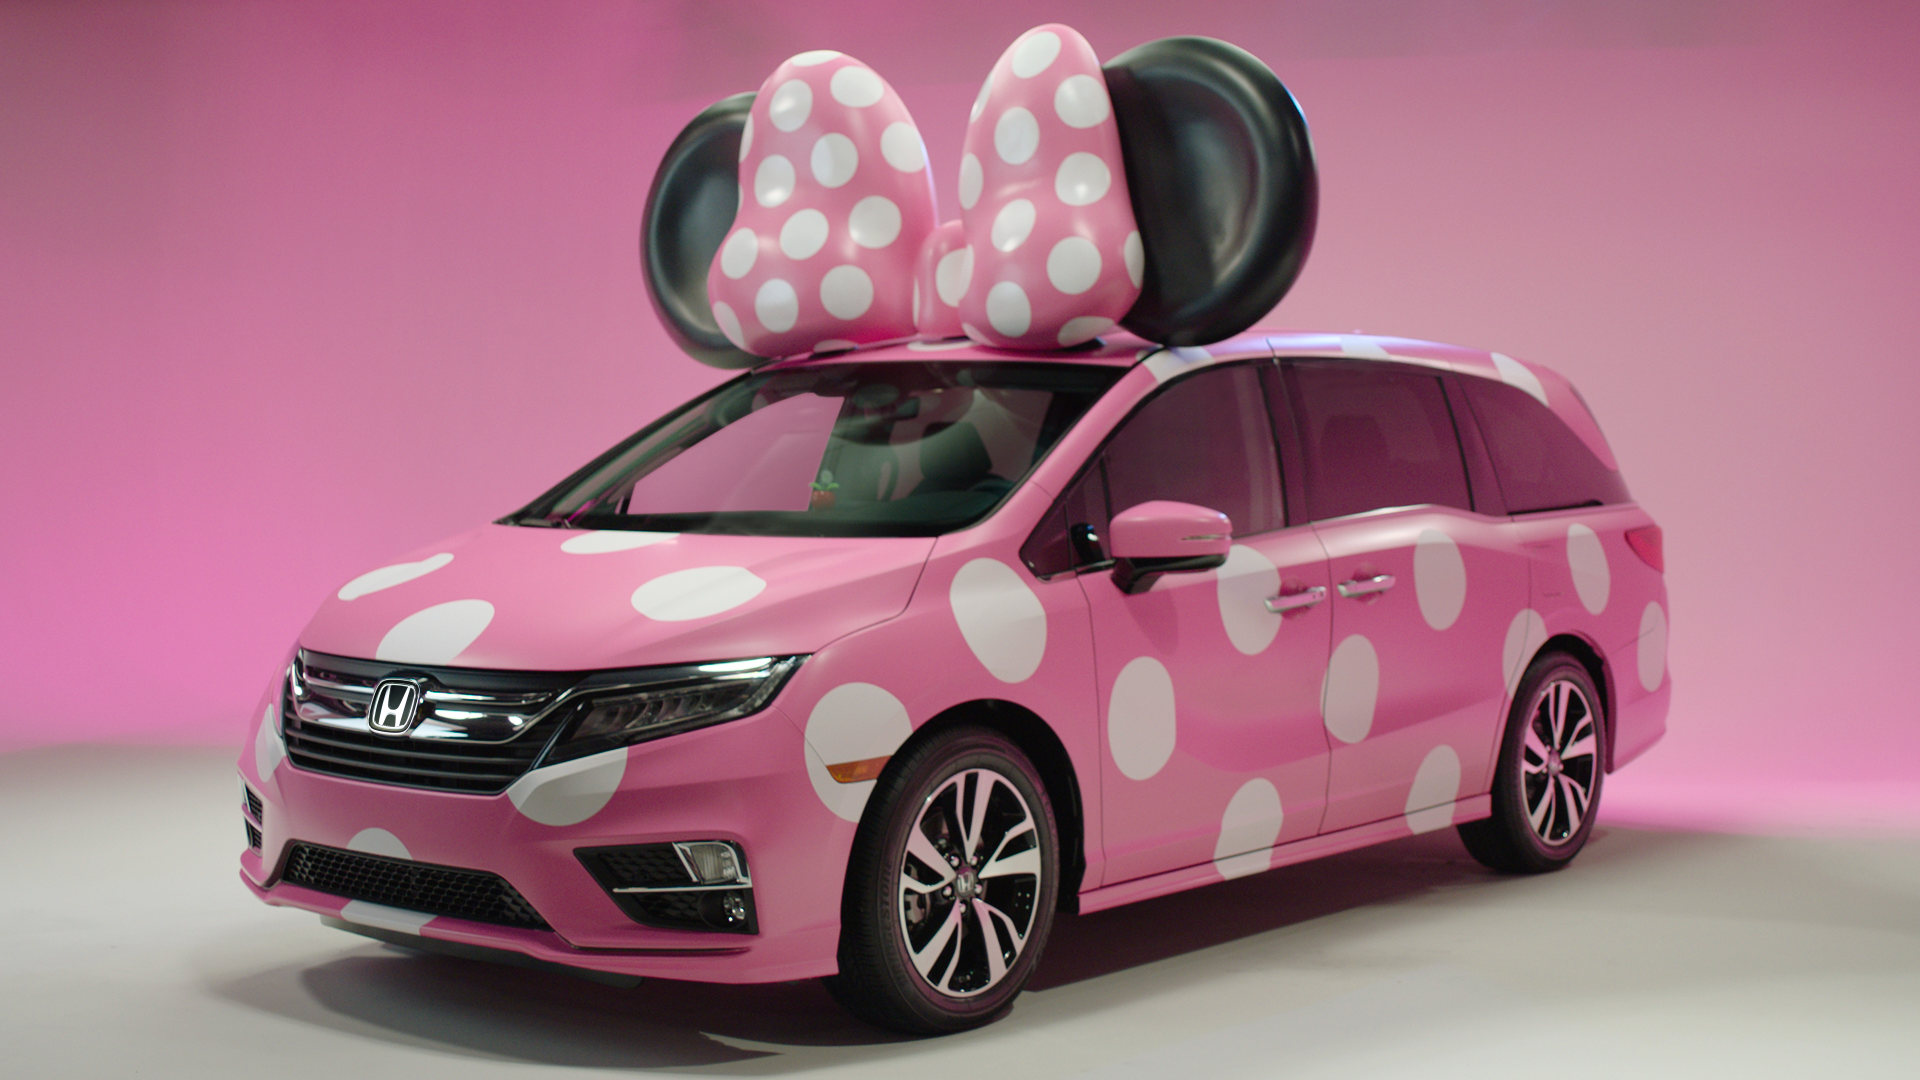 Sneak Peek at D23 Honda's New 'Minnie Van'